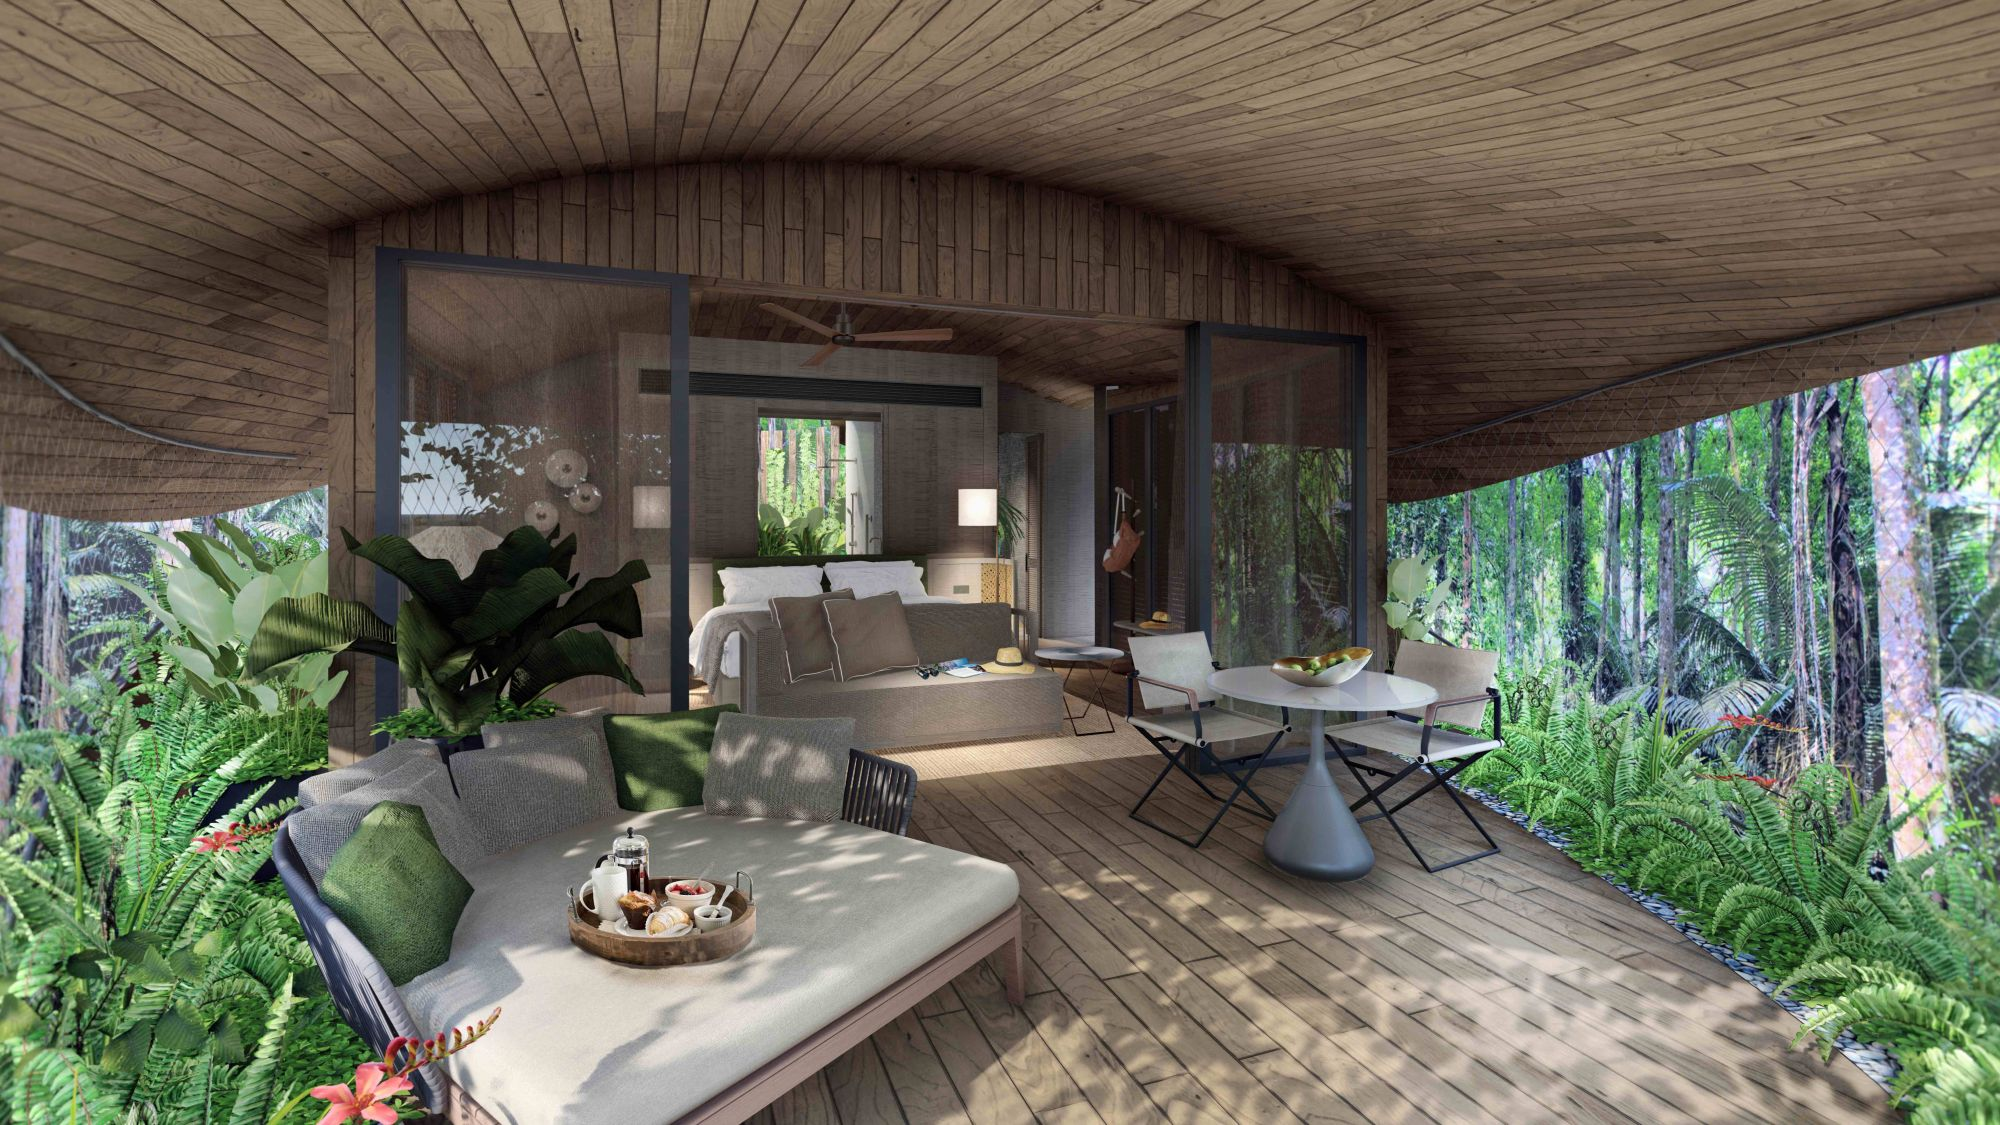 5 Nature-Inspired Hotels and Resorts with Elements of Biophilic Design